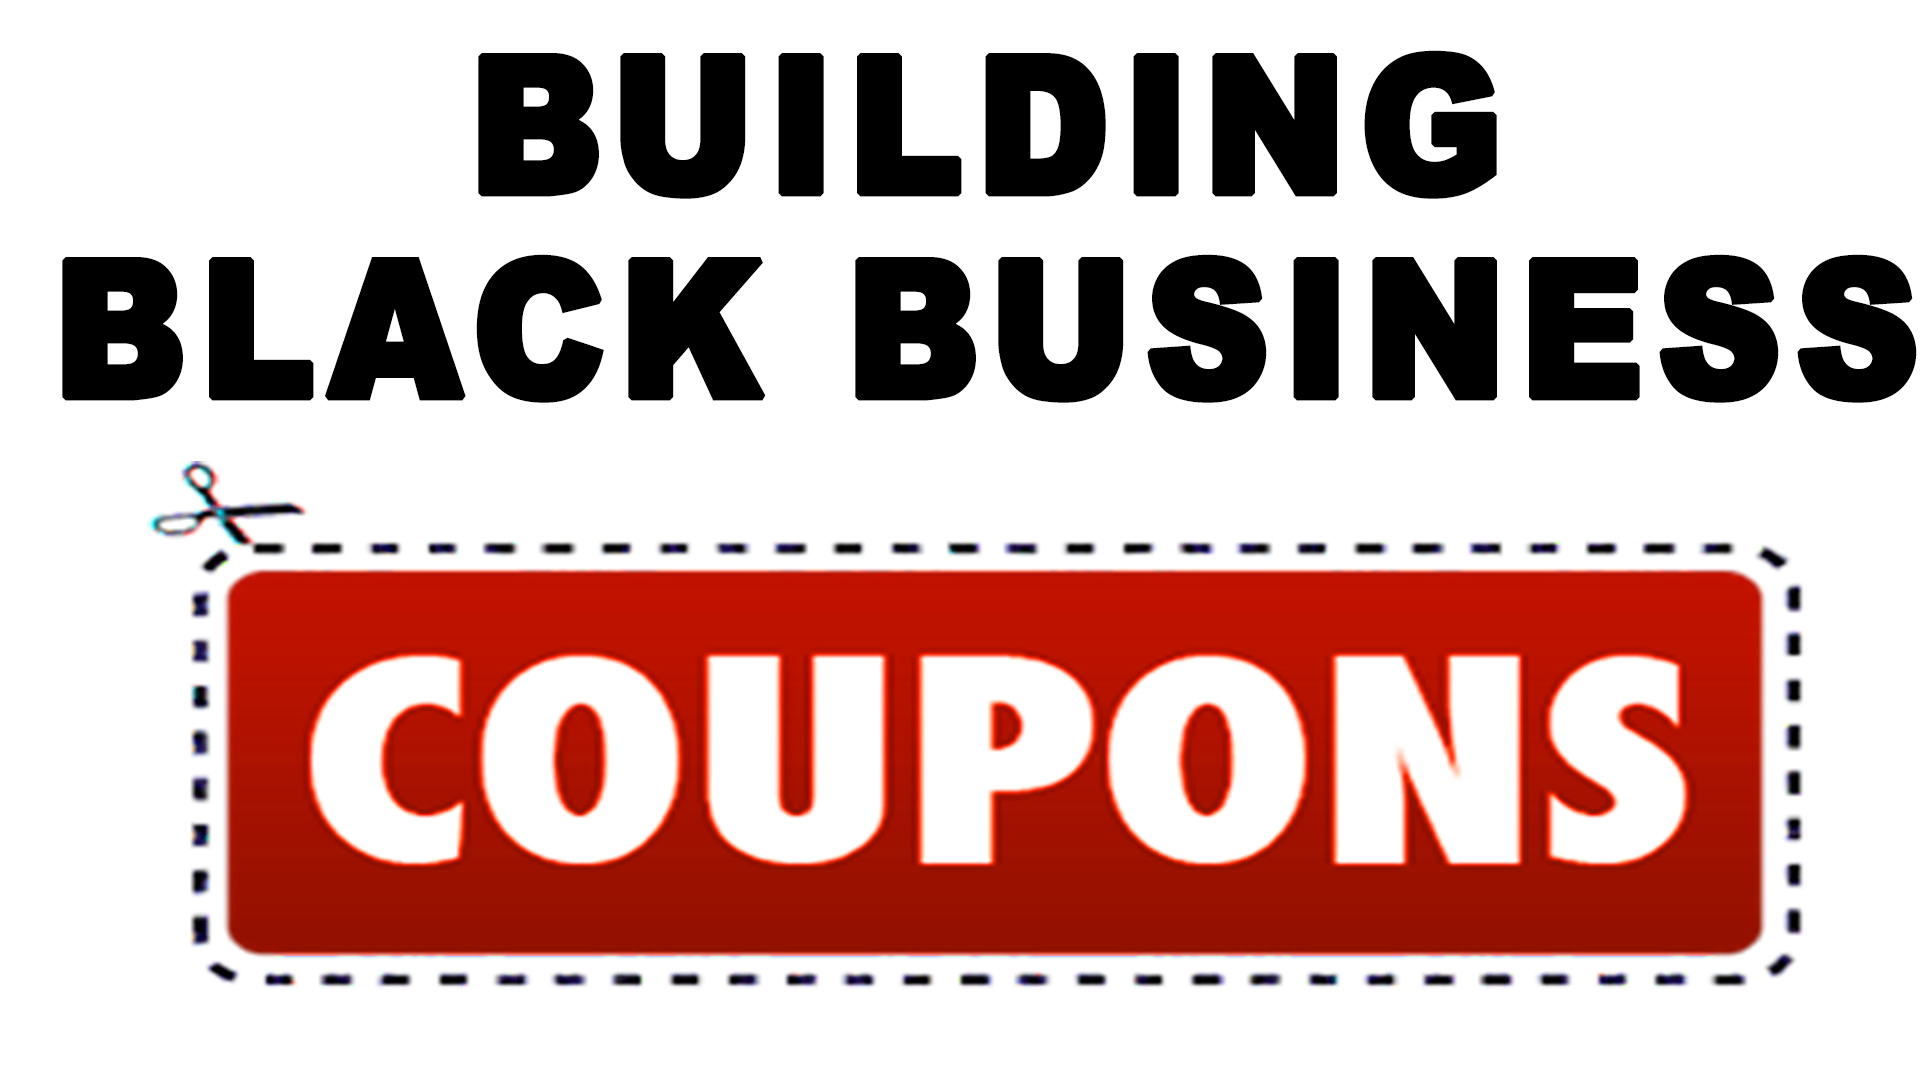 Building Black Business Coupons